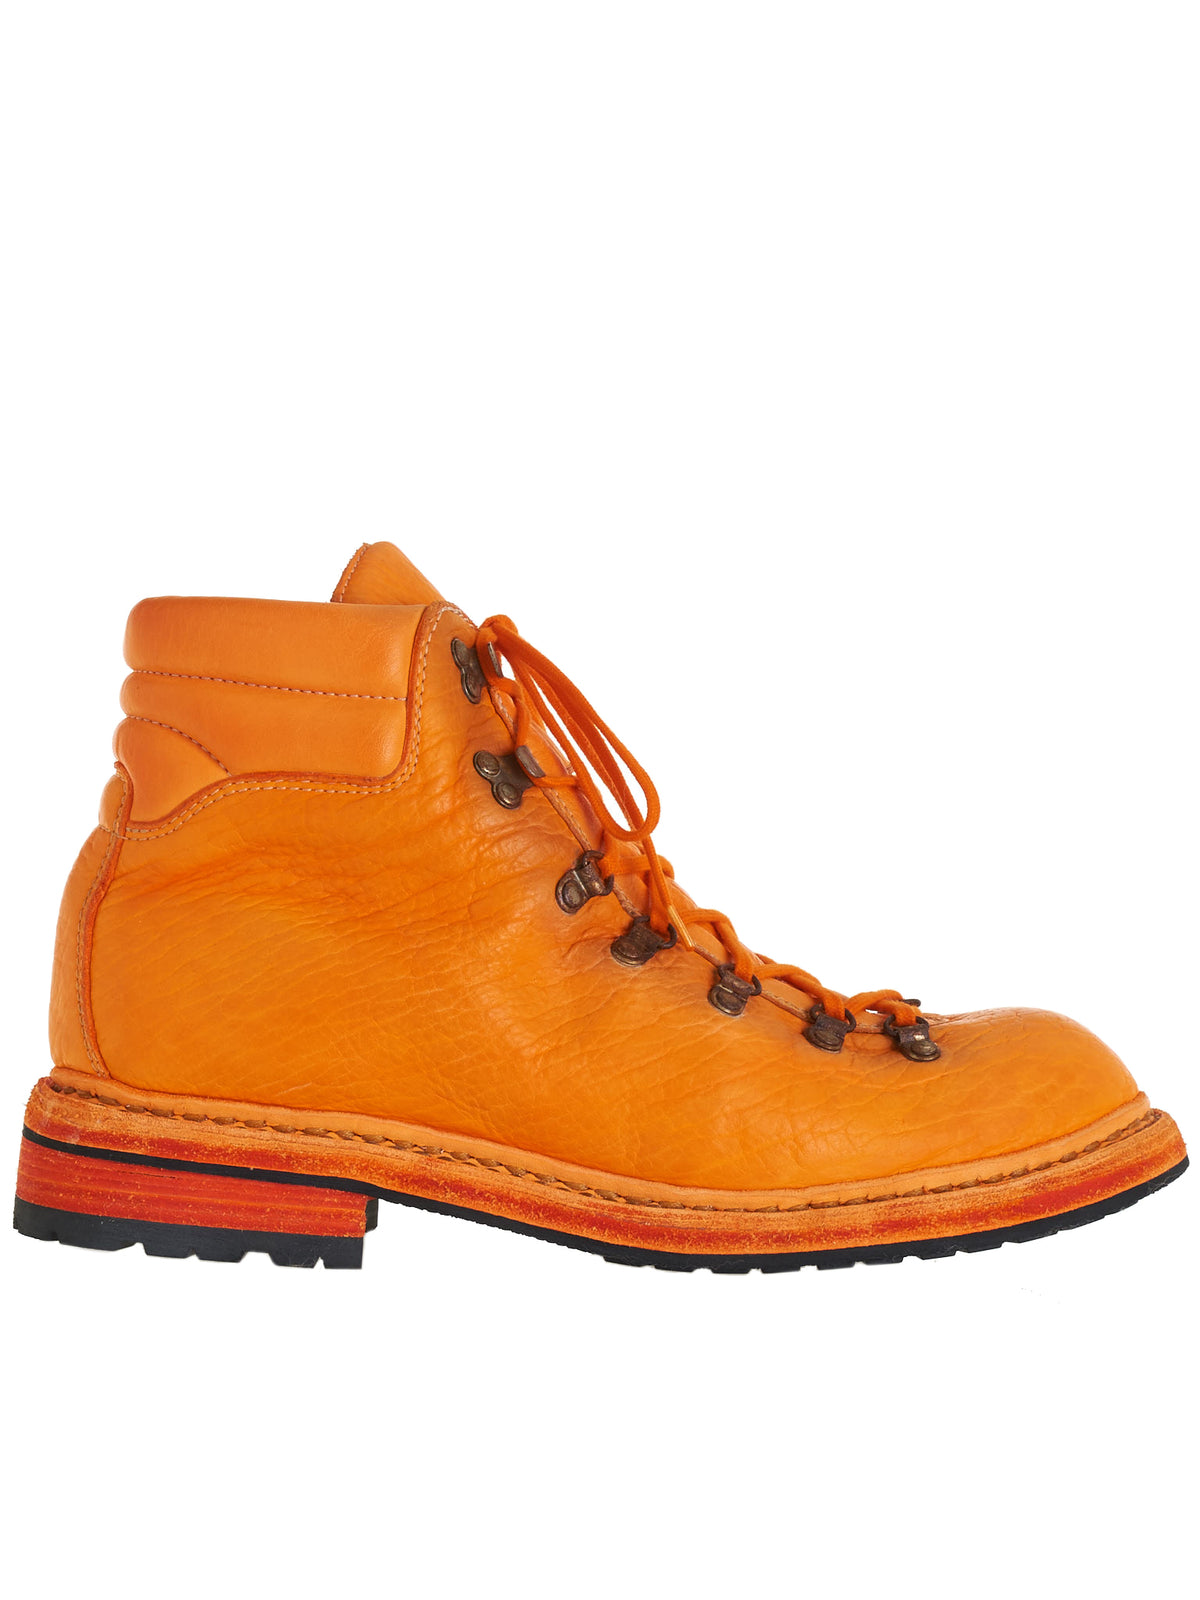 19 Bison Leather Boots (19-BISON-FG-NEON-ORANGE)